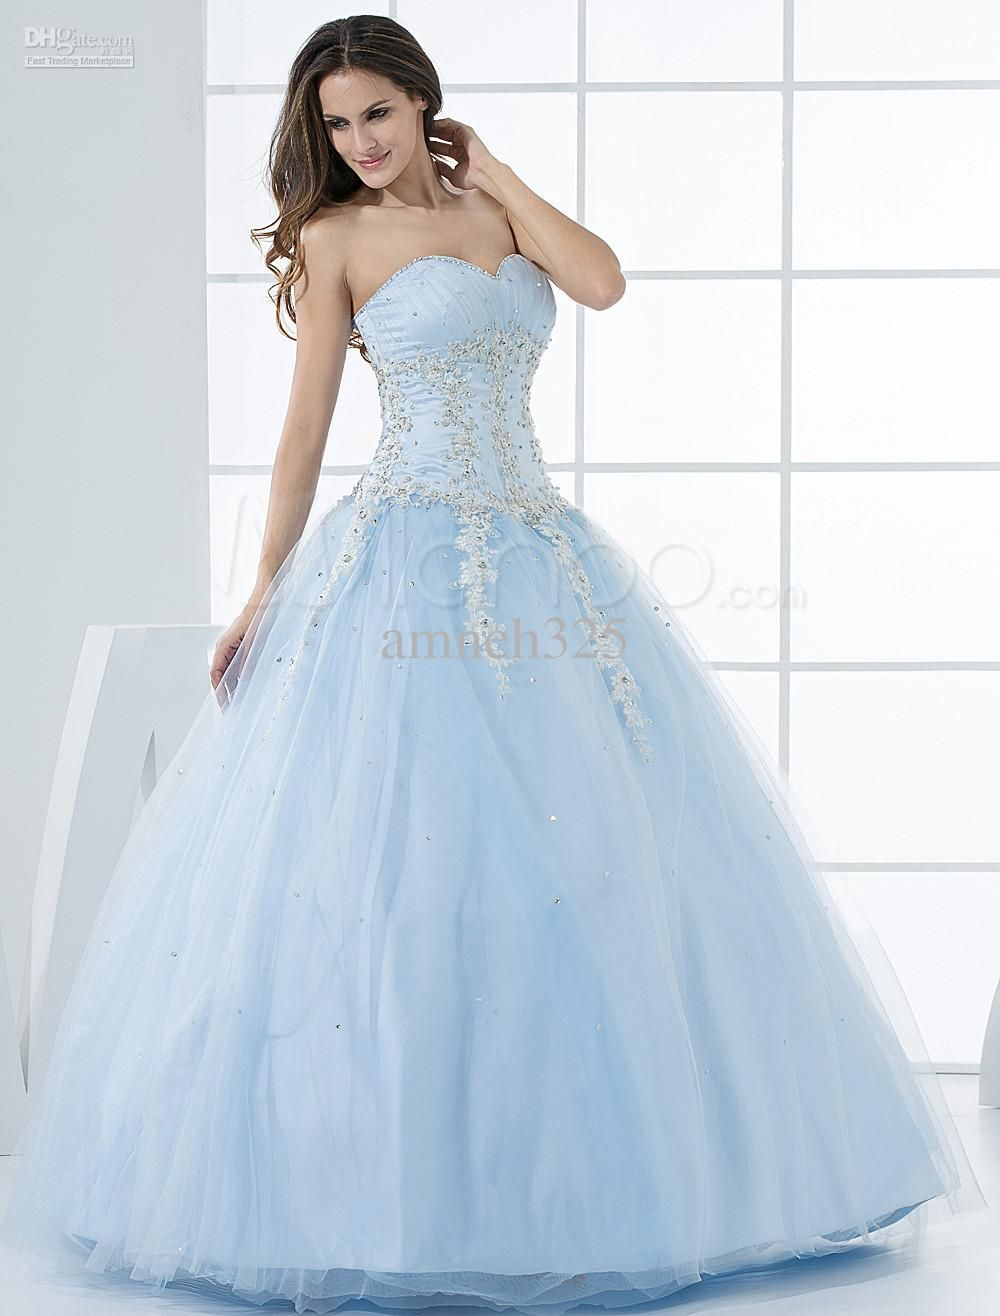 Net Gown | Beautiful dresses | Pinterest | Sweetheart dress, Baby ...